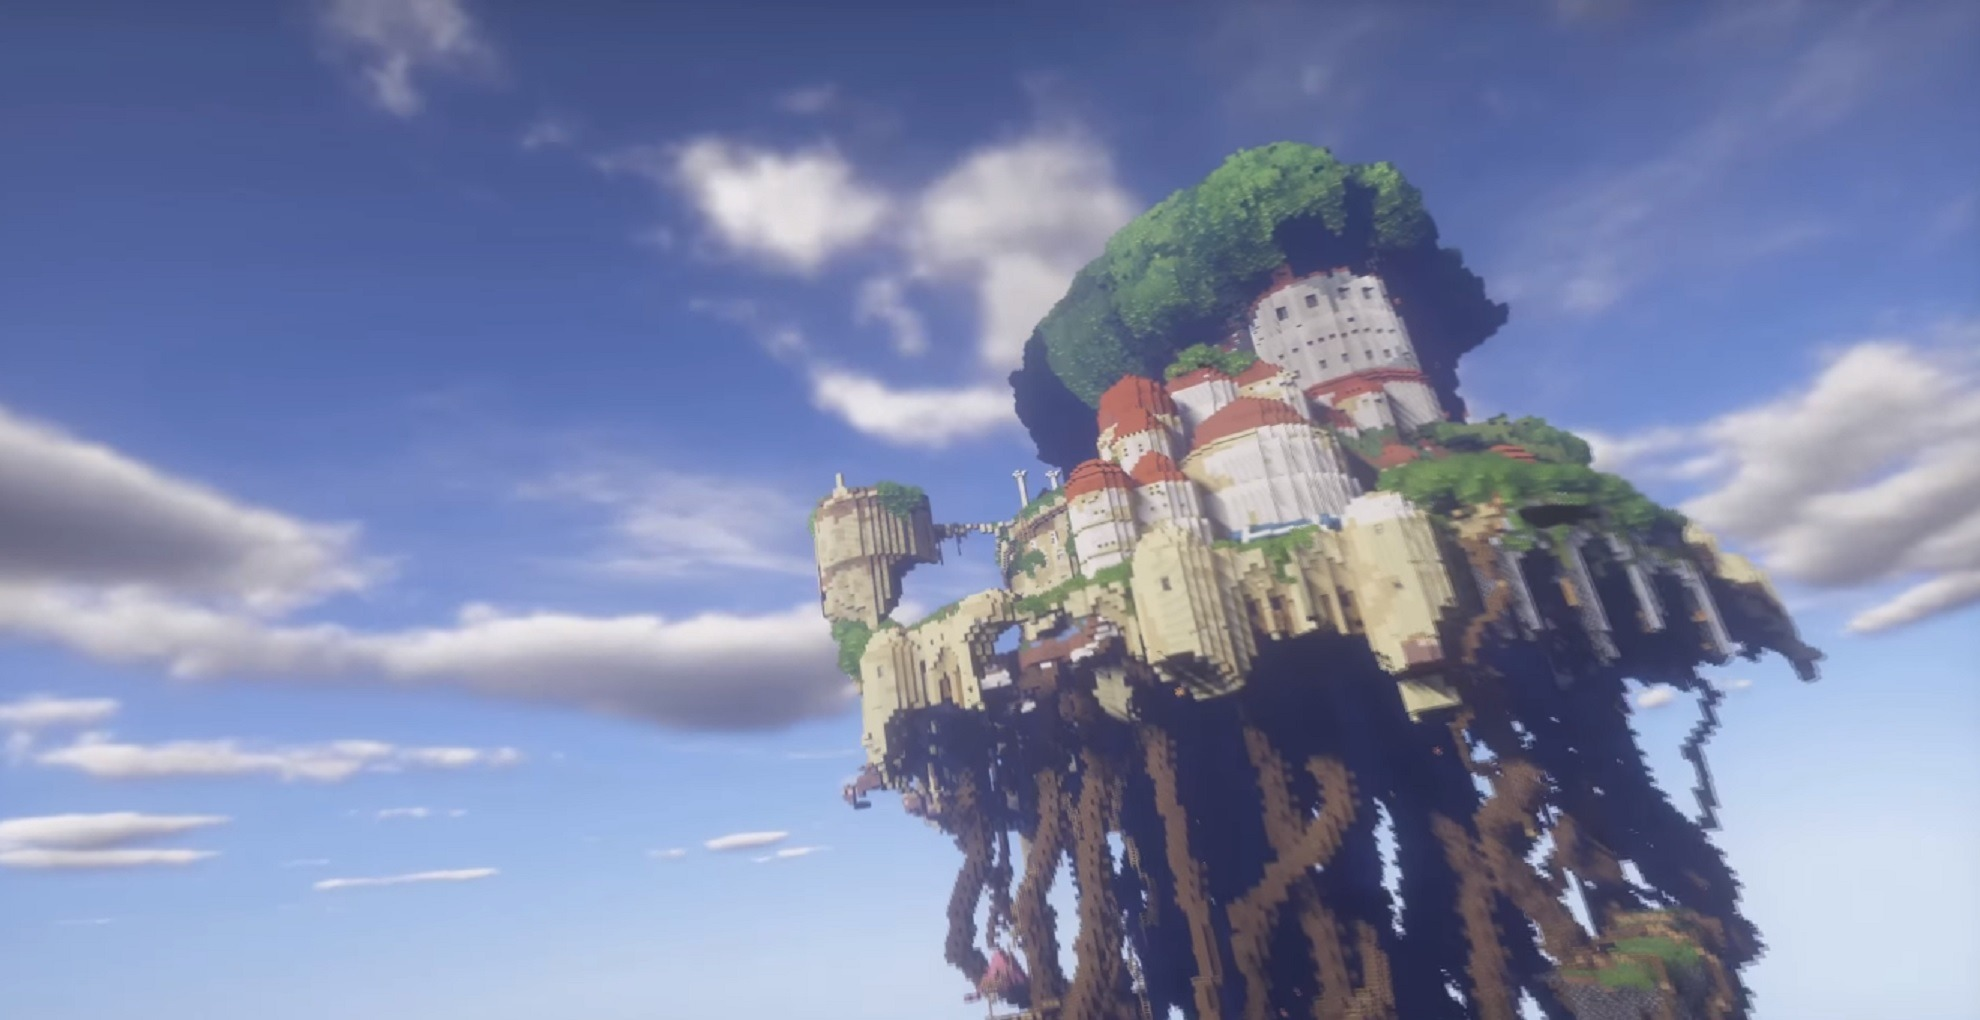 This Laputa Castle In The Sky Minecraft Recreation Took Years To